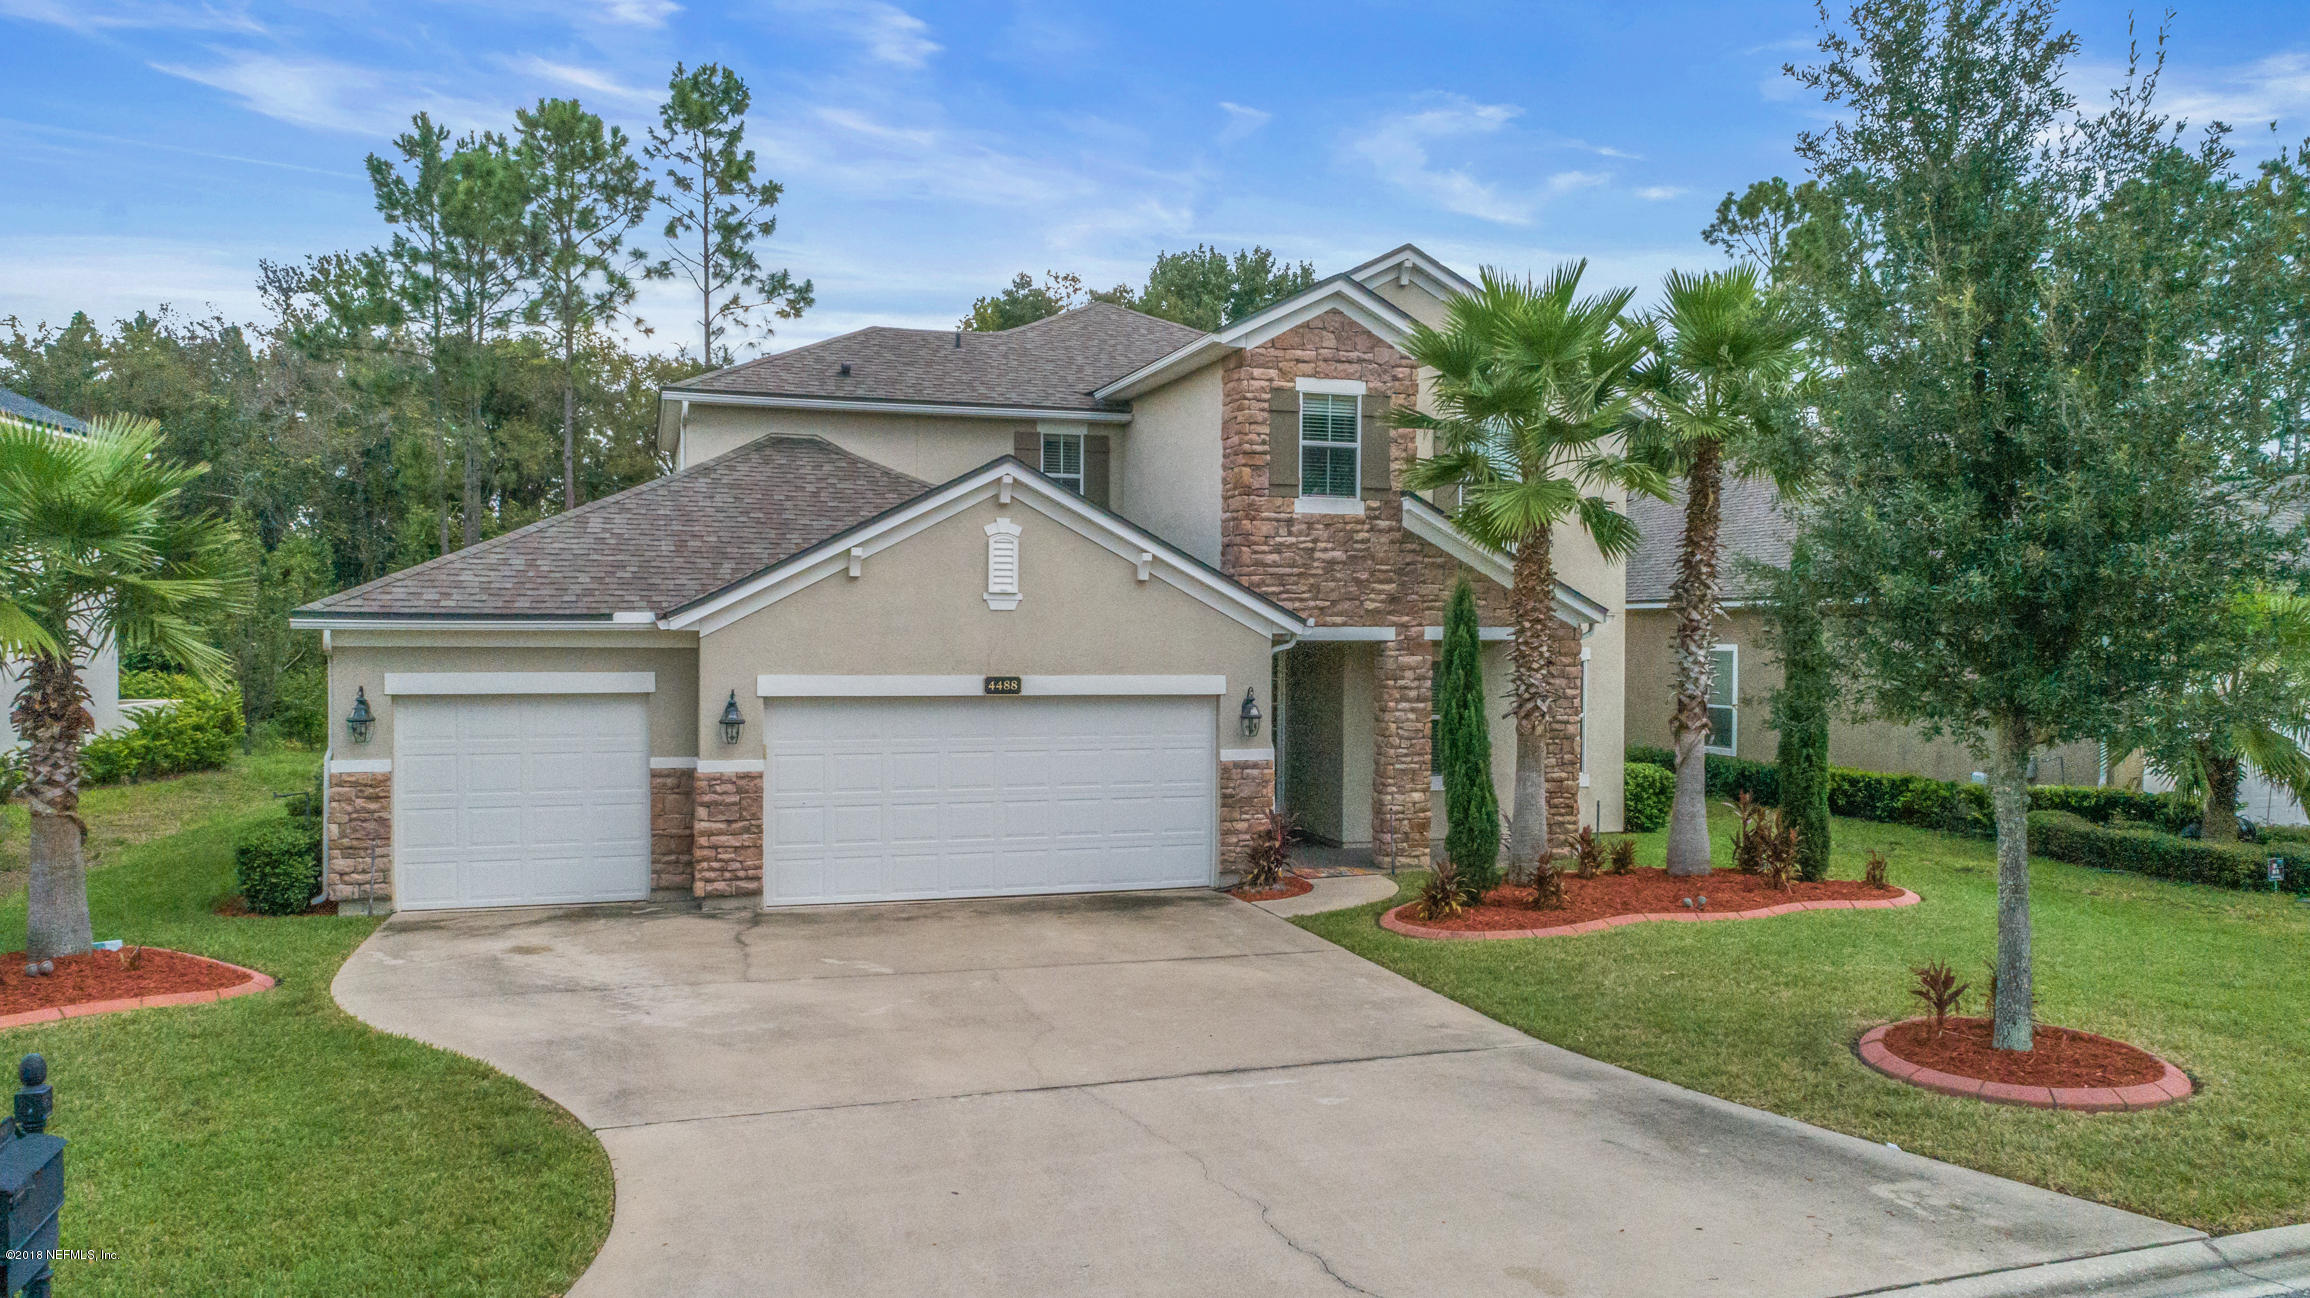 4488 GRAY HAWK, ORANGE PARK, FLORIDA 32065, 4 Bedrooms Bedrooms, ,3 BathroomsBathrooms,Residential - single family,For sale,GRAY HAWK,961240